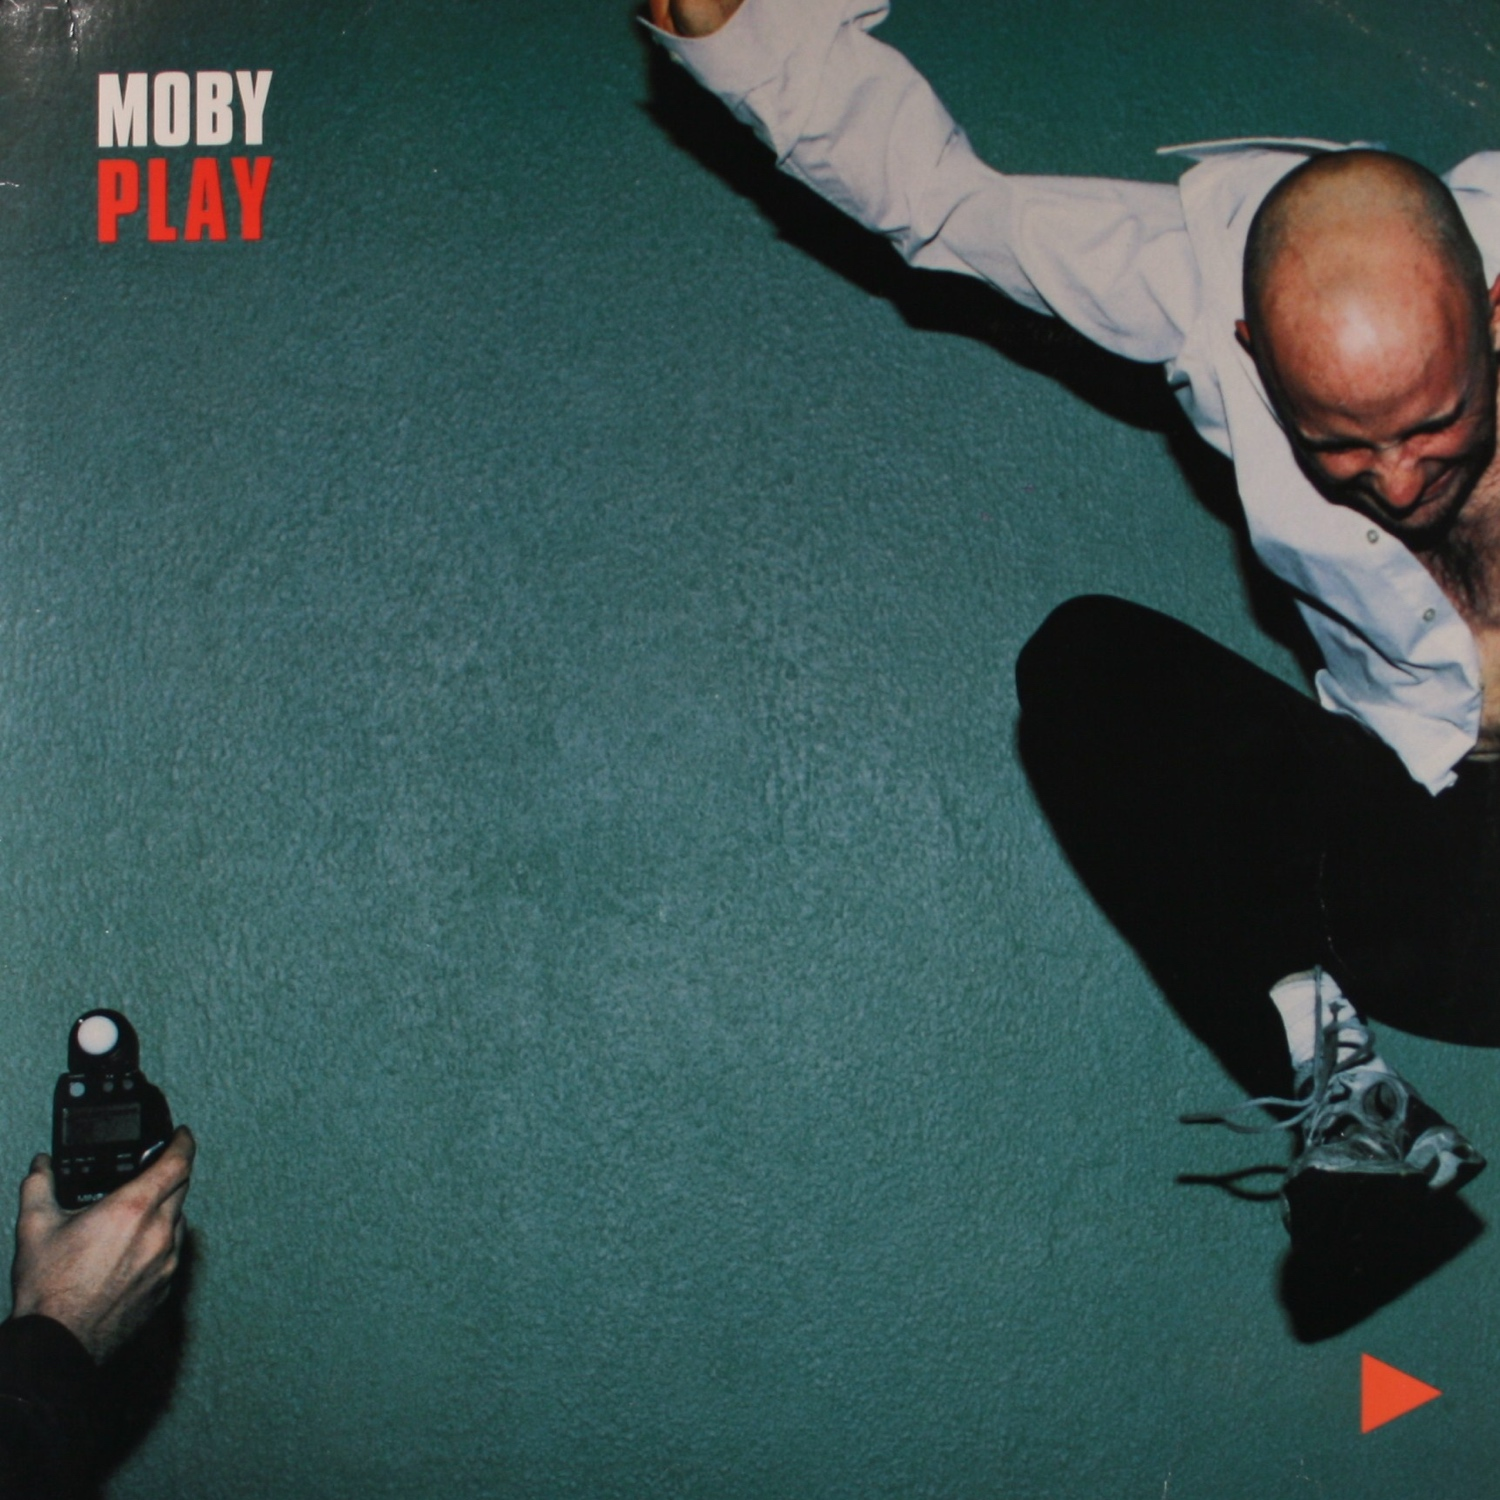 How Moby's bestselling album Play damaged electronic music